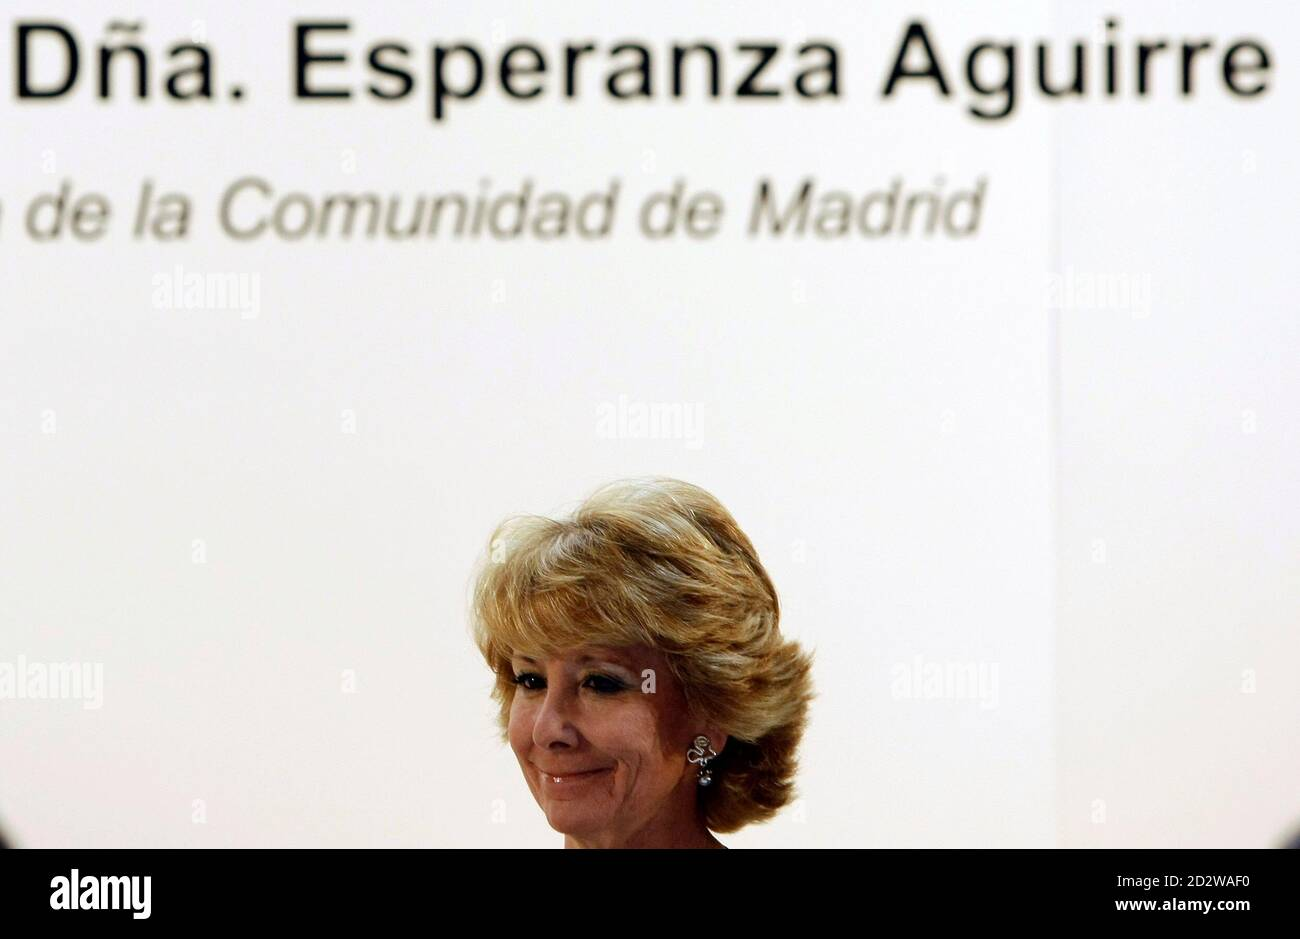 Esperanza Aguirre (L), the president of the Madrid Regional Government and one of the main Popular Party (PP) leaders, prepares to speak at a political luncheon in Madrid April 7, 2008. REUTERS/Sergio Perez (SPAIN) Foto Stock